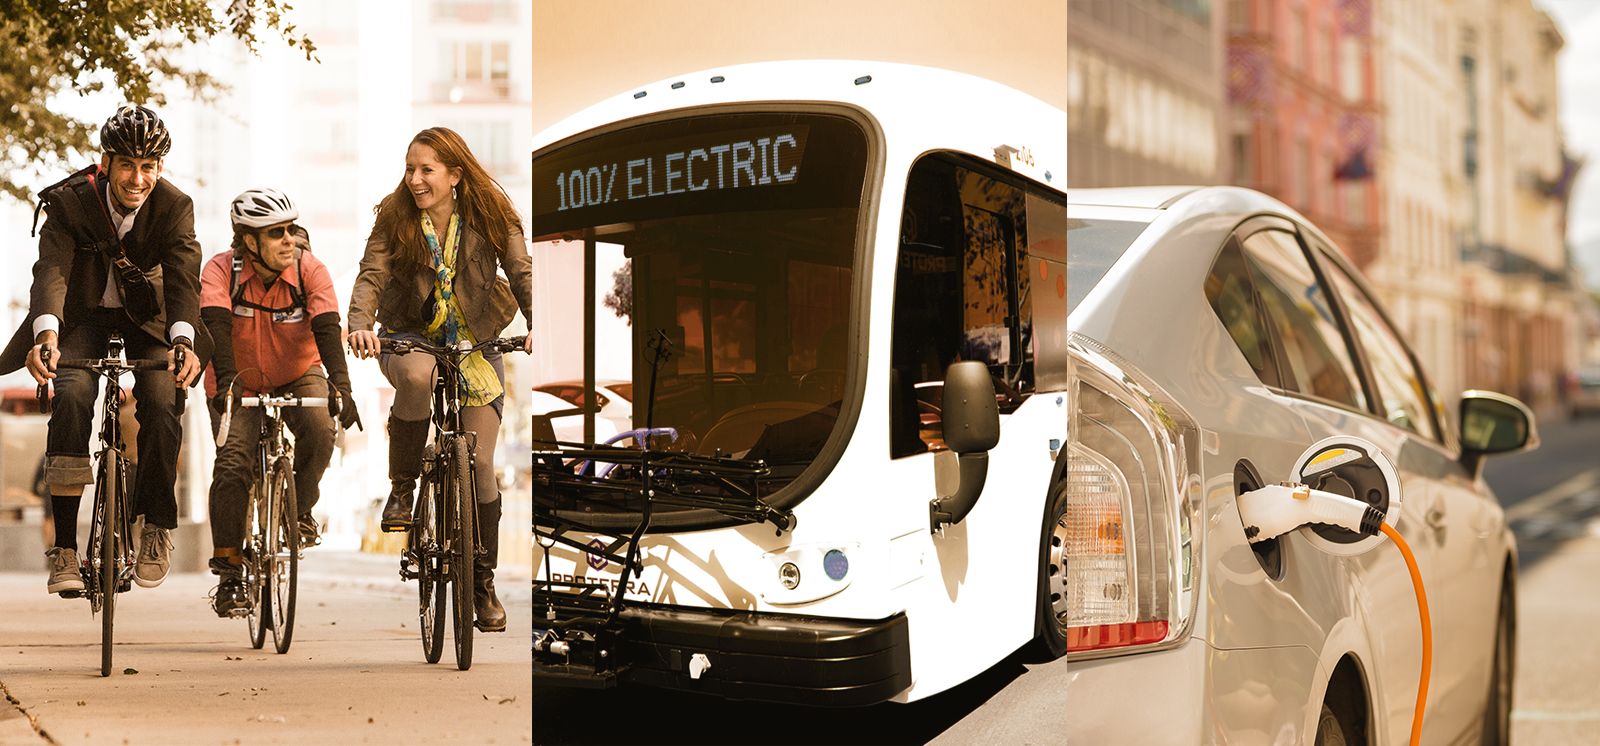 "<h4>TRANSFORM TRANSPORTATION</h4><p>Getting from ""A to B"" could be much healthier, safer and more pleasant — and better for our planet — if it was easier to walk, bike, take transit or use an electric vehicle. We're urging Congress and the Biden administration to build a 21st century transportation system.</p><div><a class=""slideshowButton"" href=""#transAnchor"">LEARN MORE</a></div><em>Adam Coppola Photography/Public Domain, Erica Hsu, Matej Kastelic via Shutterstock</em>"